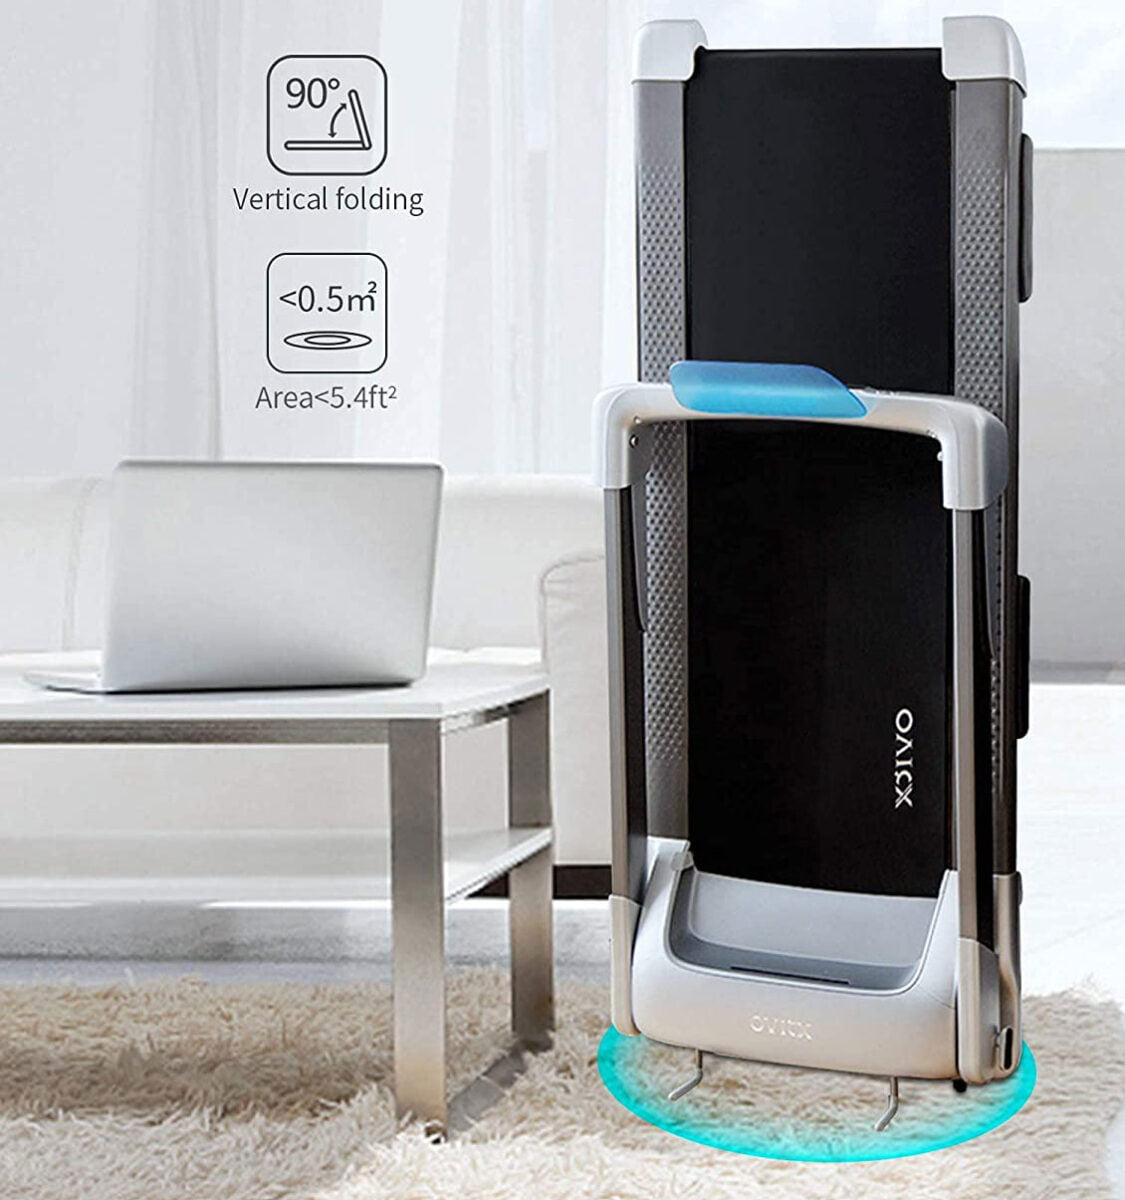 OVICX Q2S Folded Against Wall For Storage